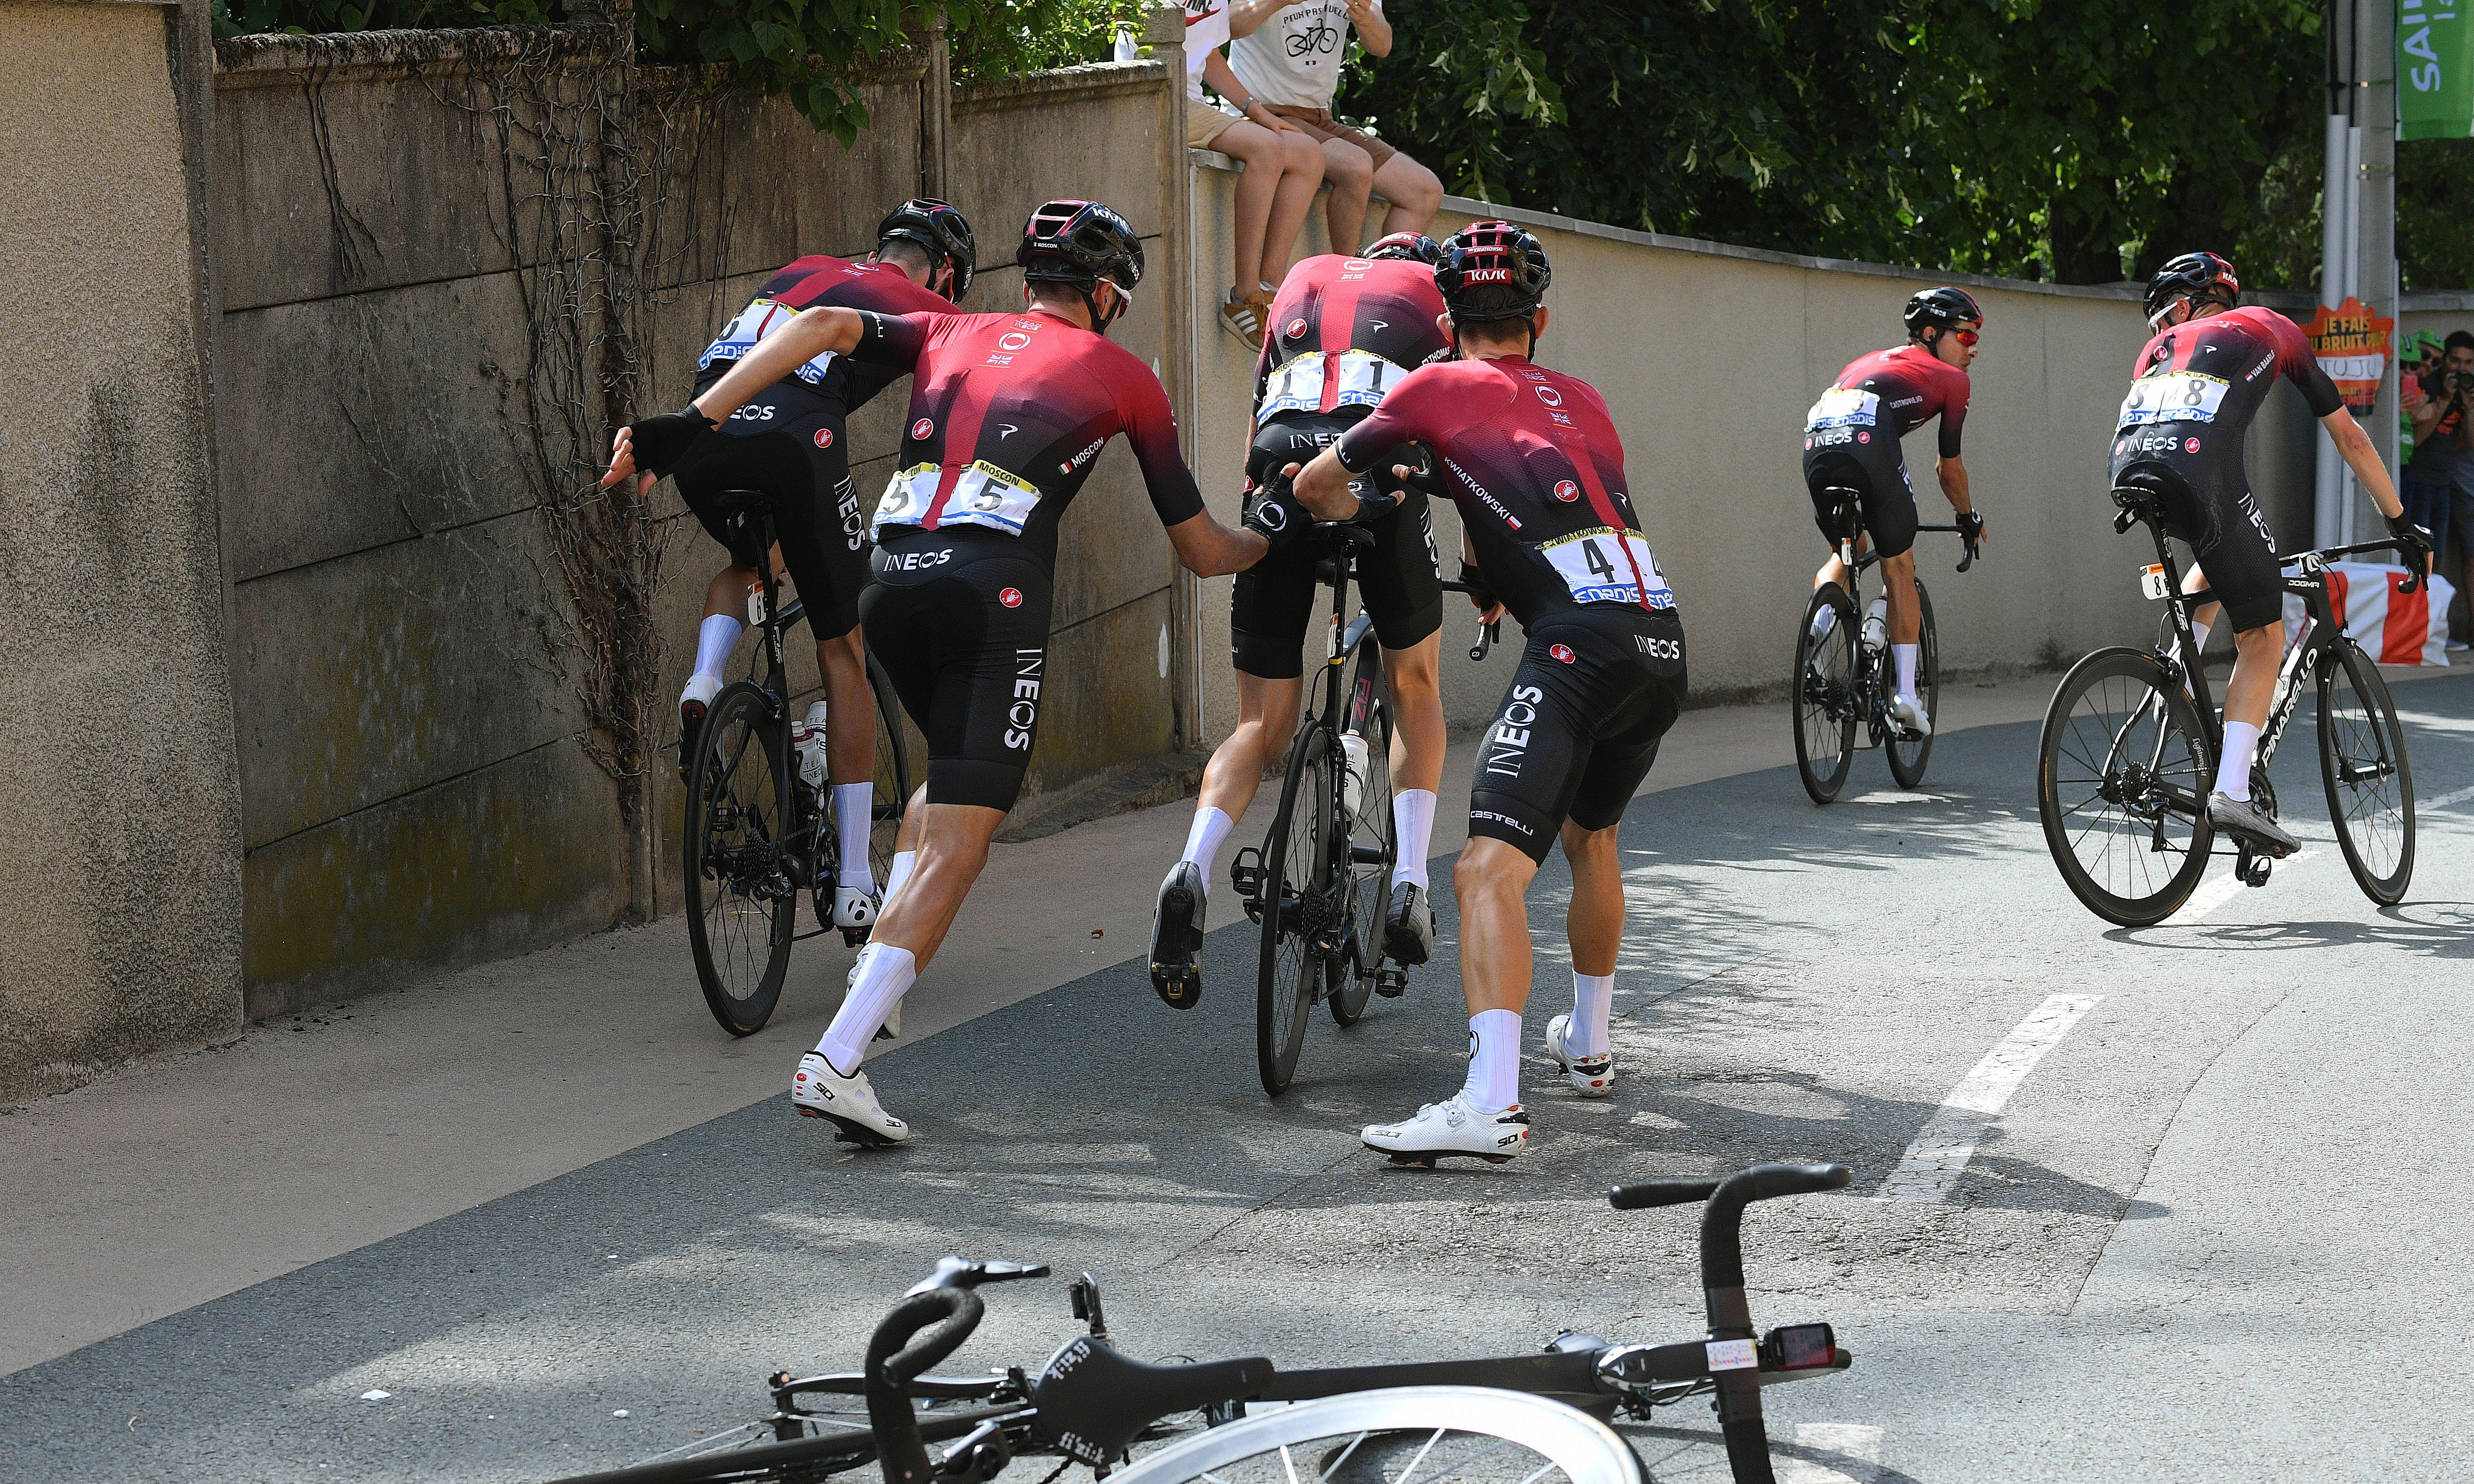 Tour de France diary: Spin from Dave Brailsford, a spill for Geraint Thomas